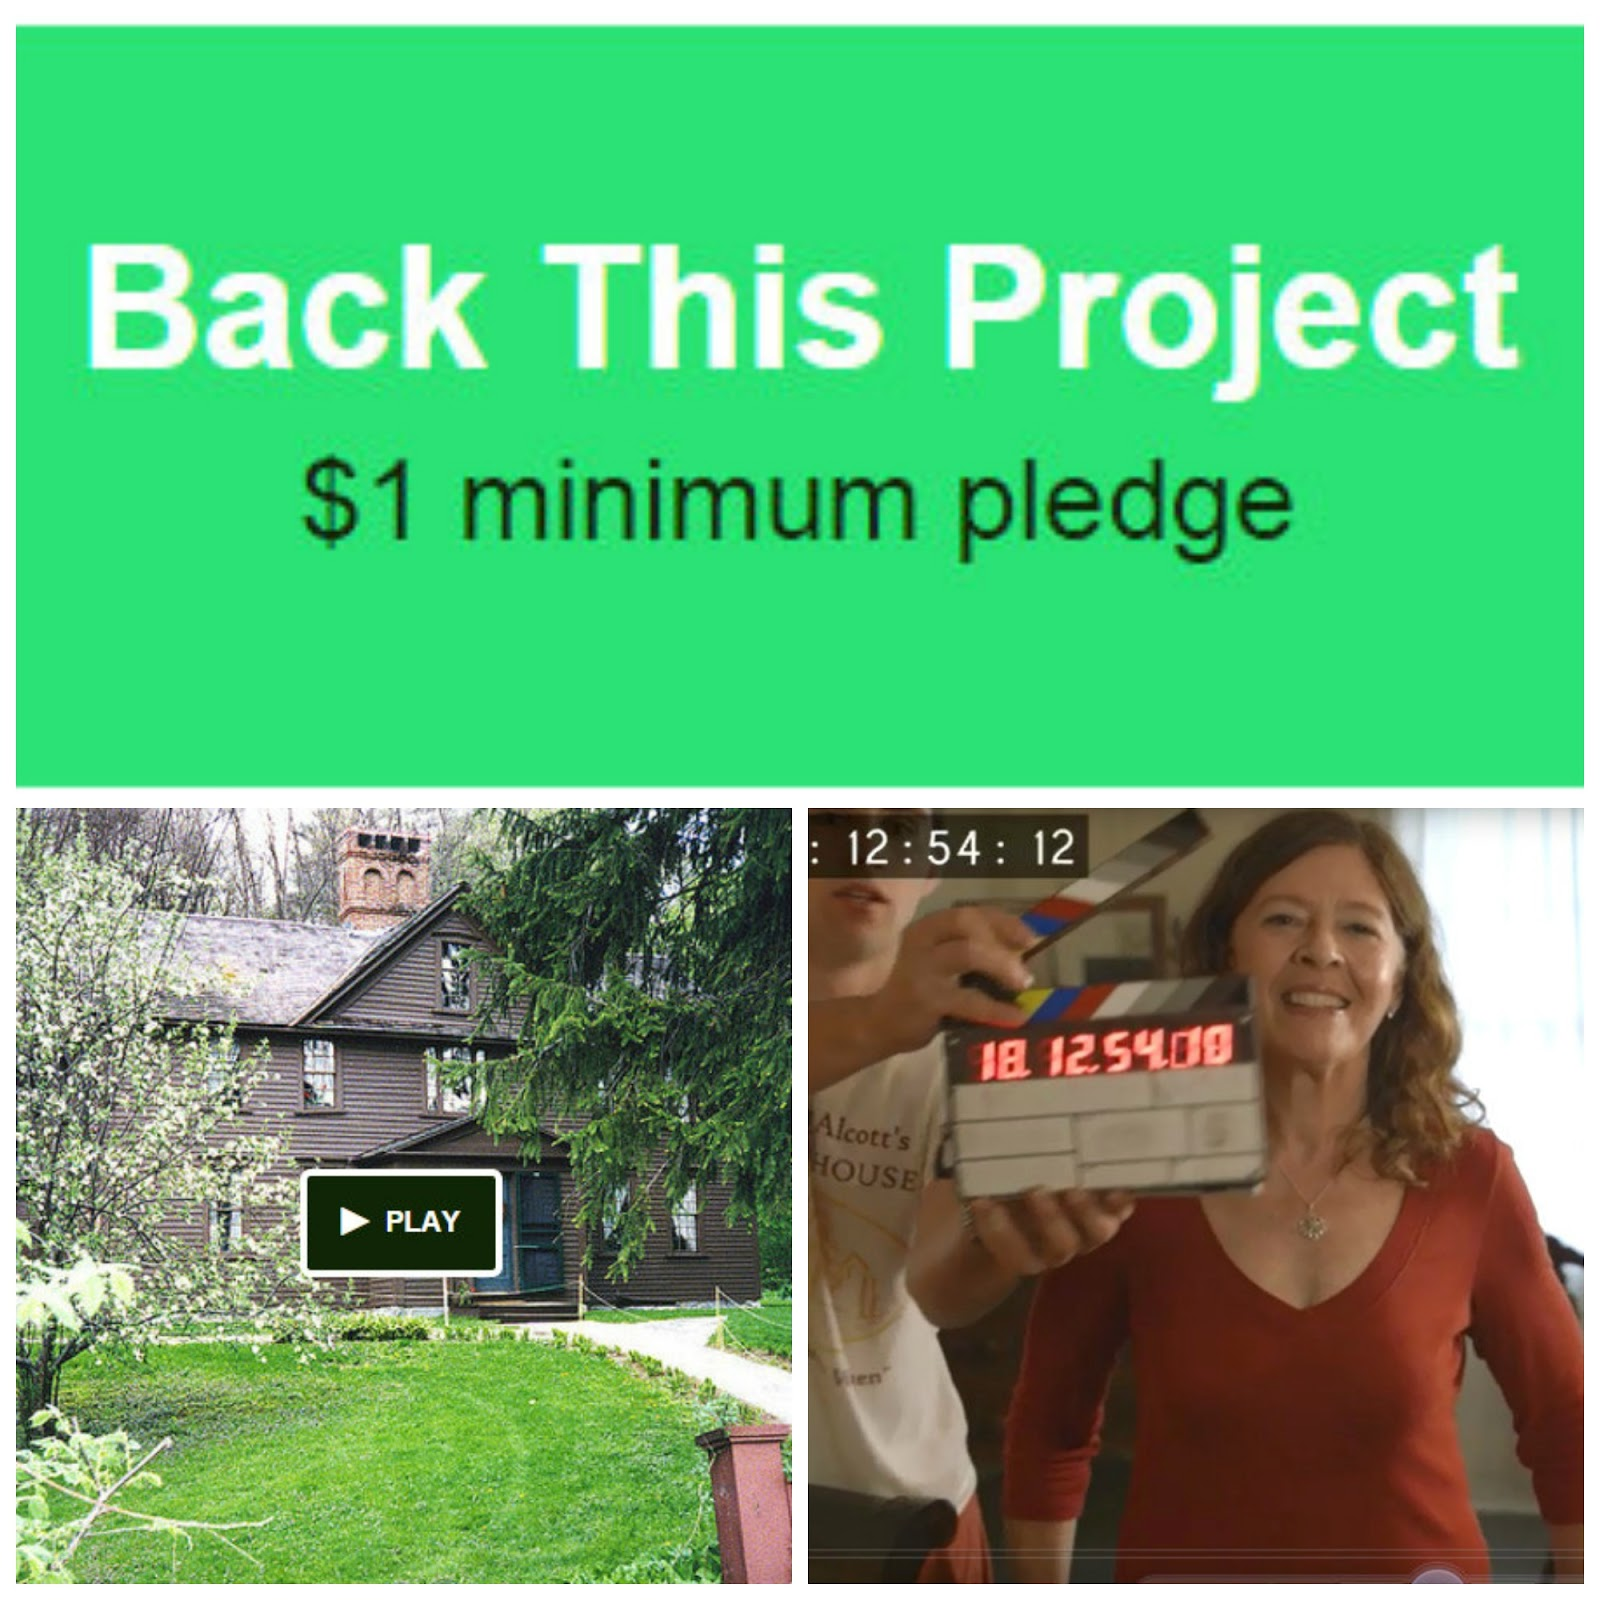 https://www.kickstarter.com/projects/632439913/orchard-house